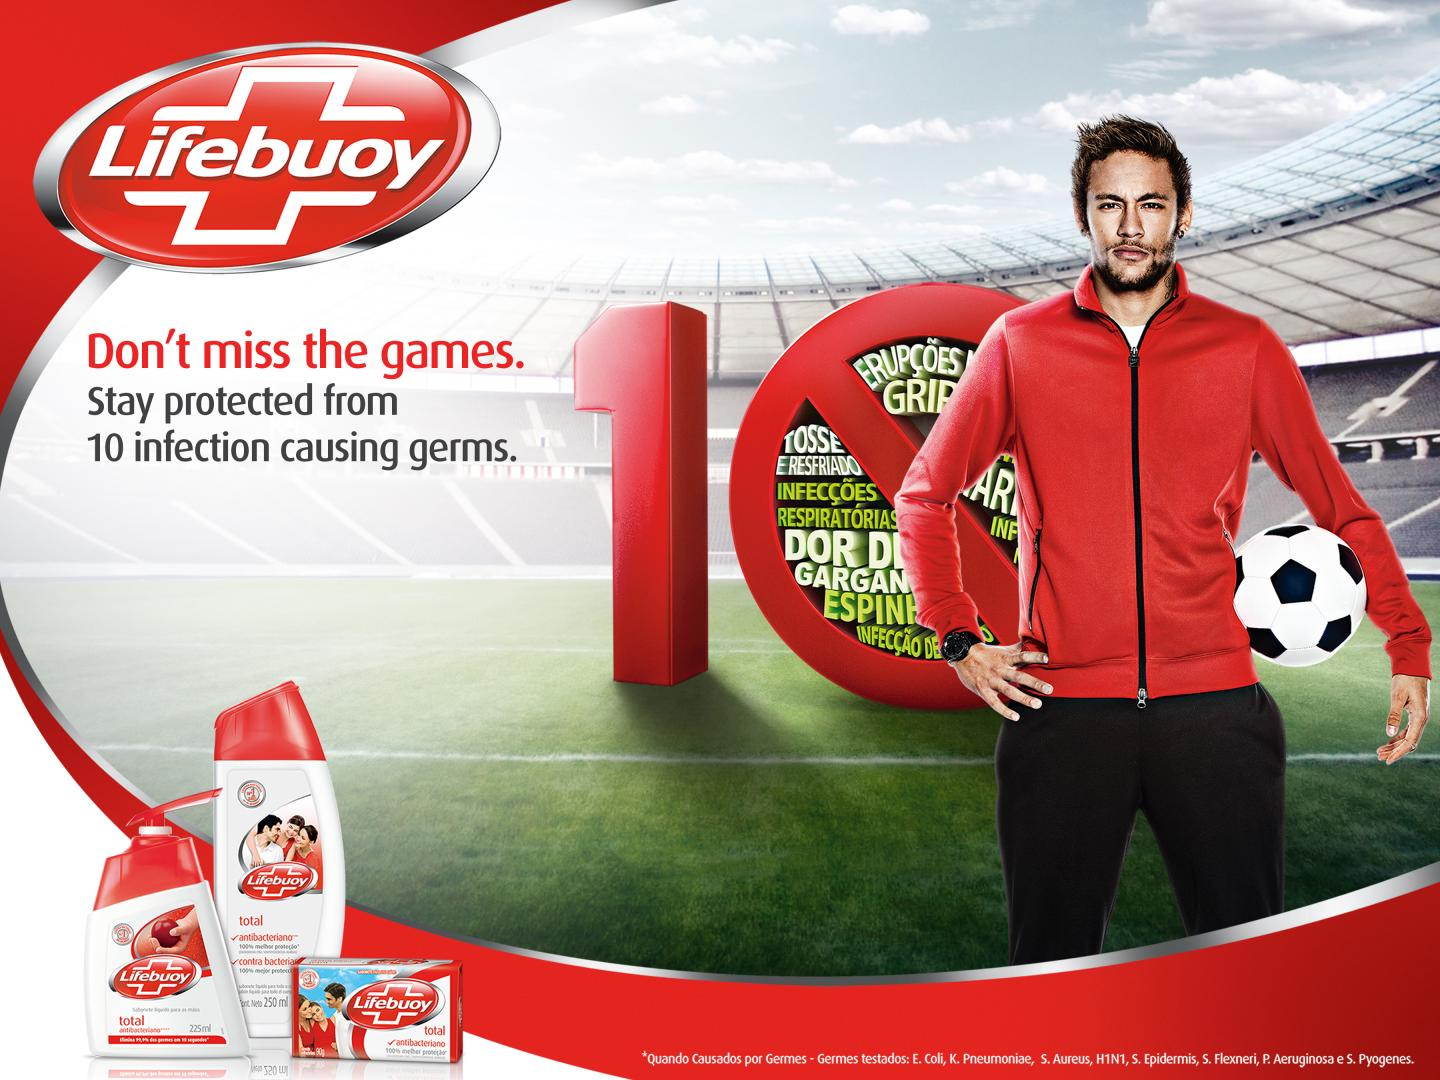 Don't miss the games. Don't forget Lifebuoy Thumbnail